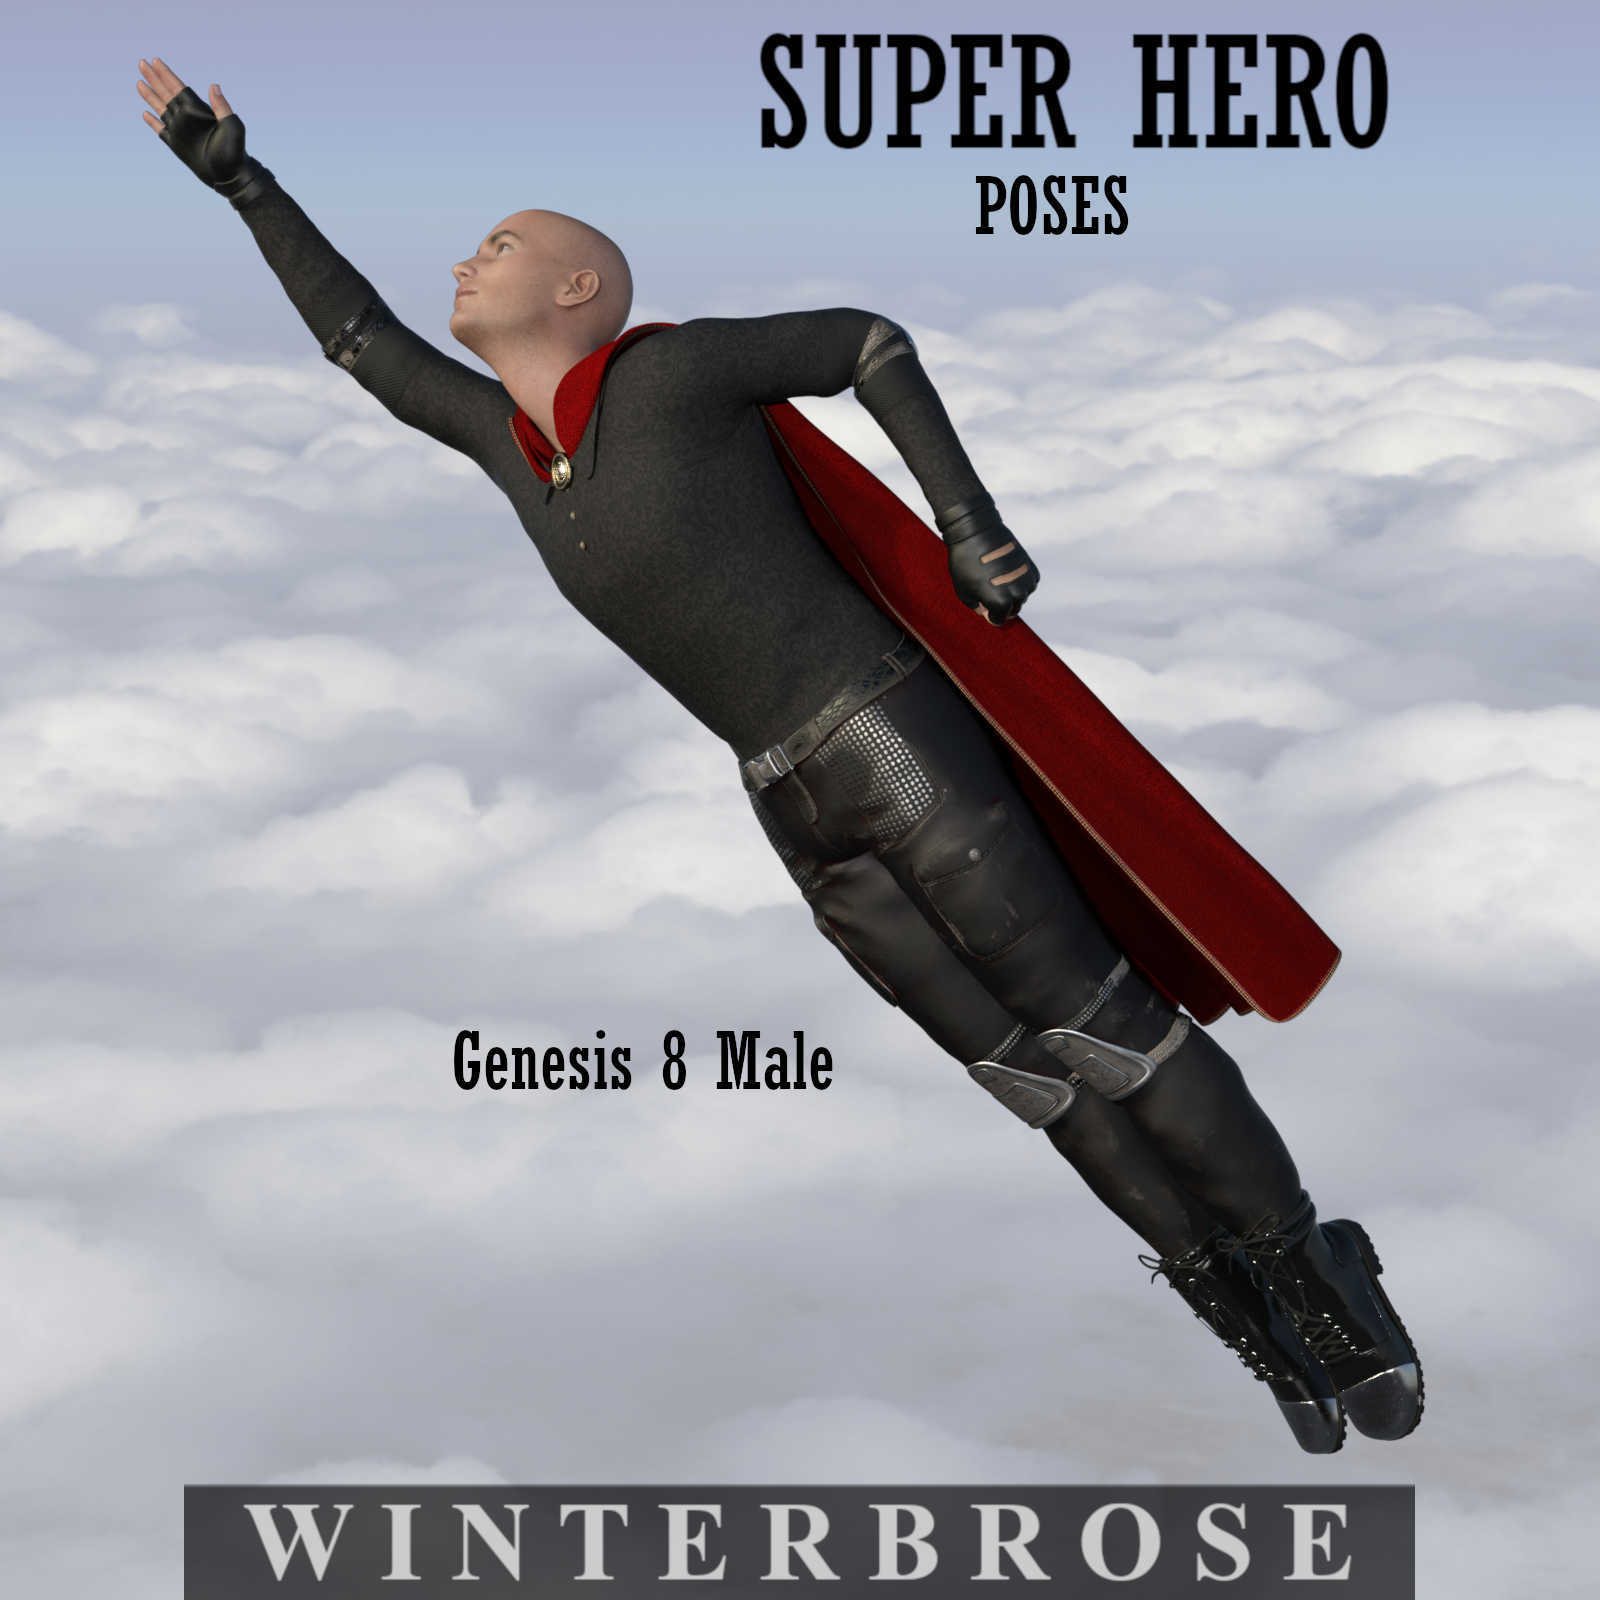 SUPER HERO Poses for Genesis 8 Male Figure